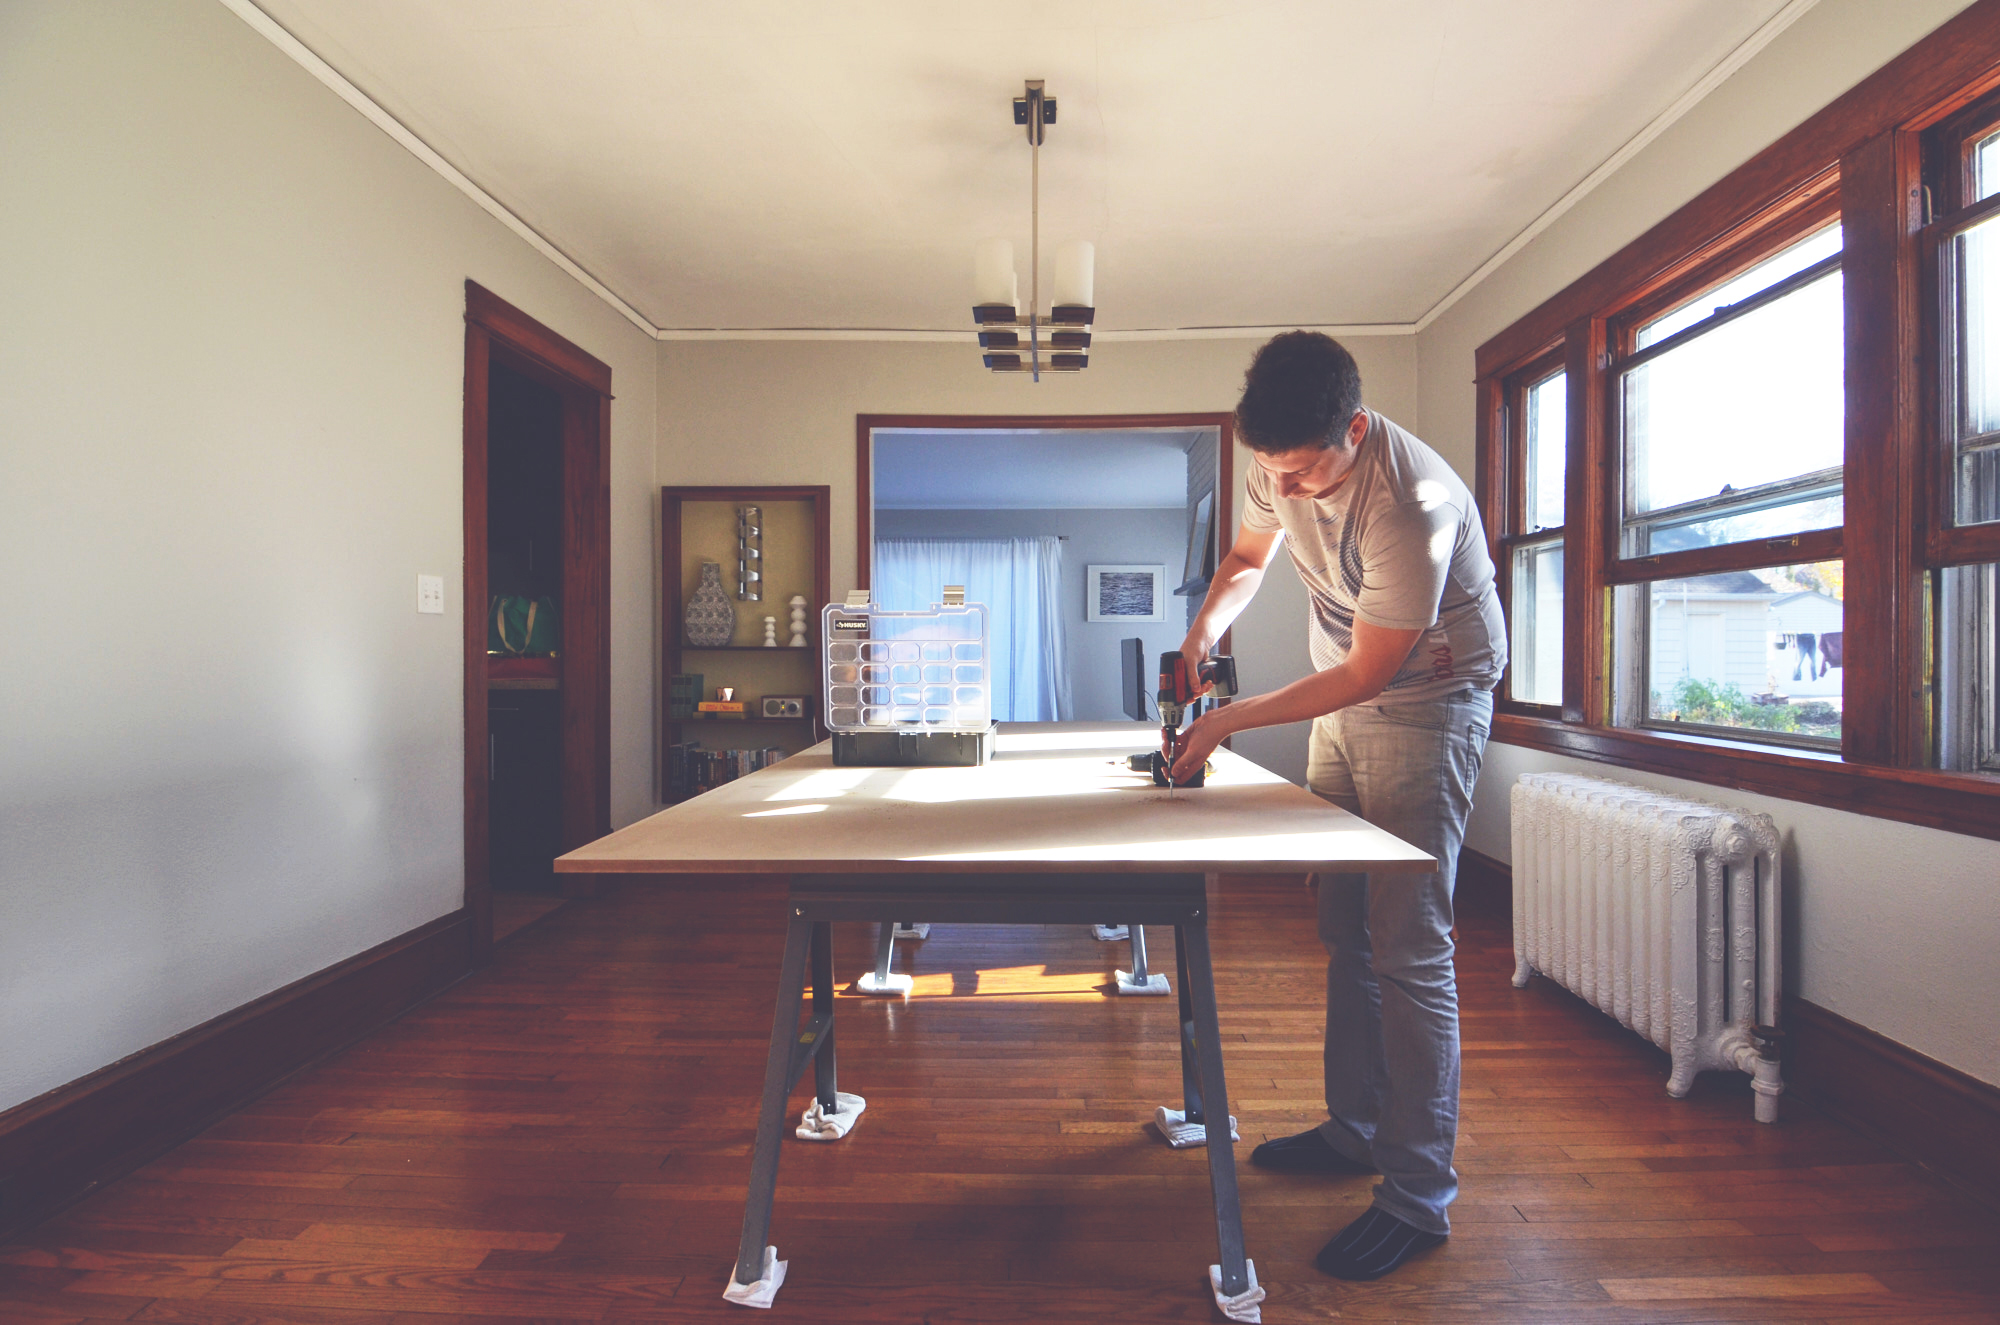 setting up a temporary dinner table